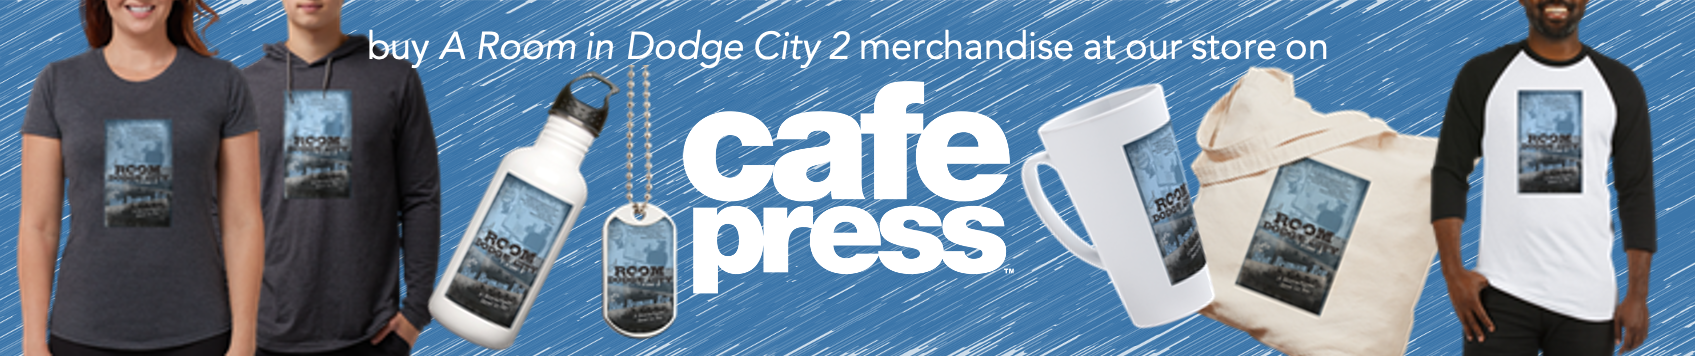 Buy A Room in Dodge City 2 merchandise at Cafe Press